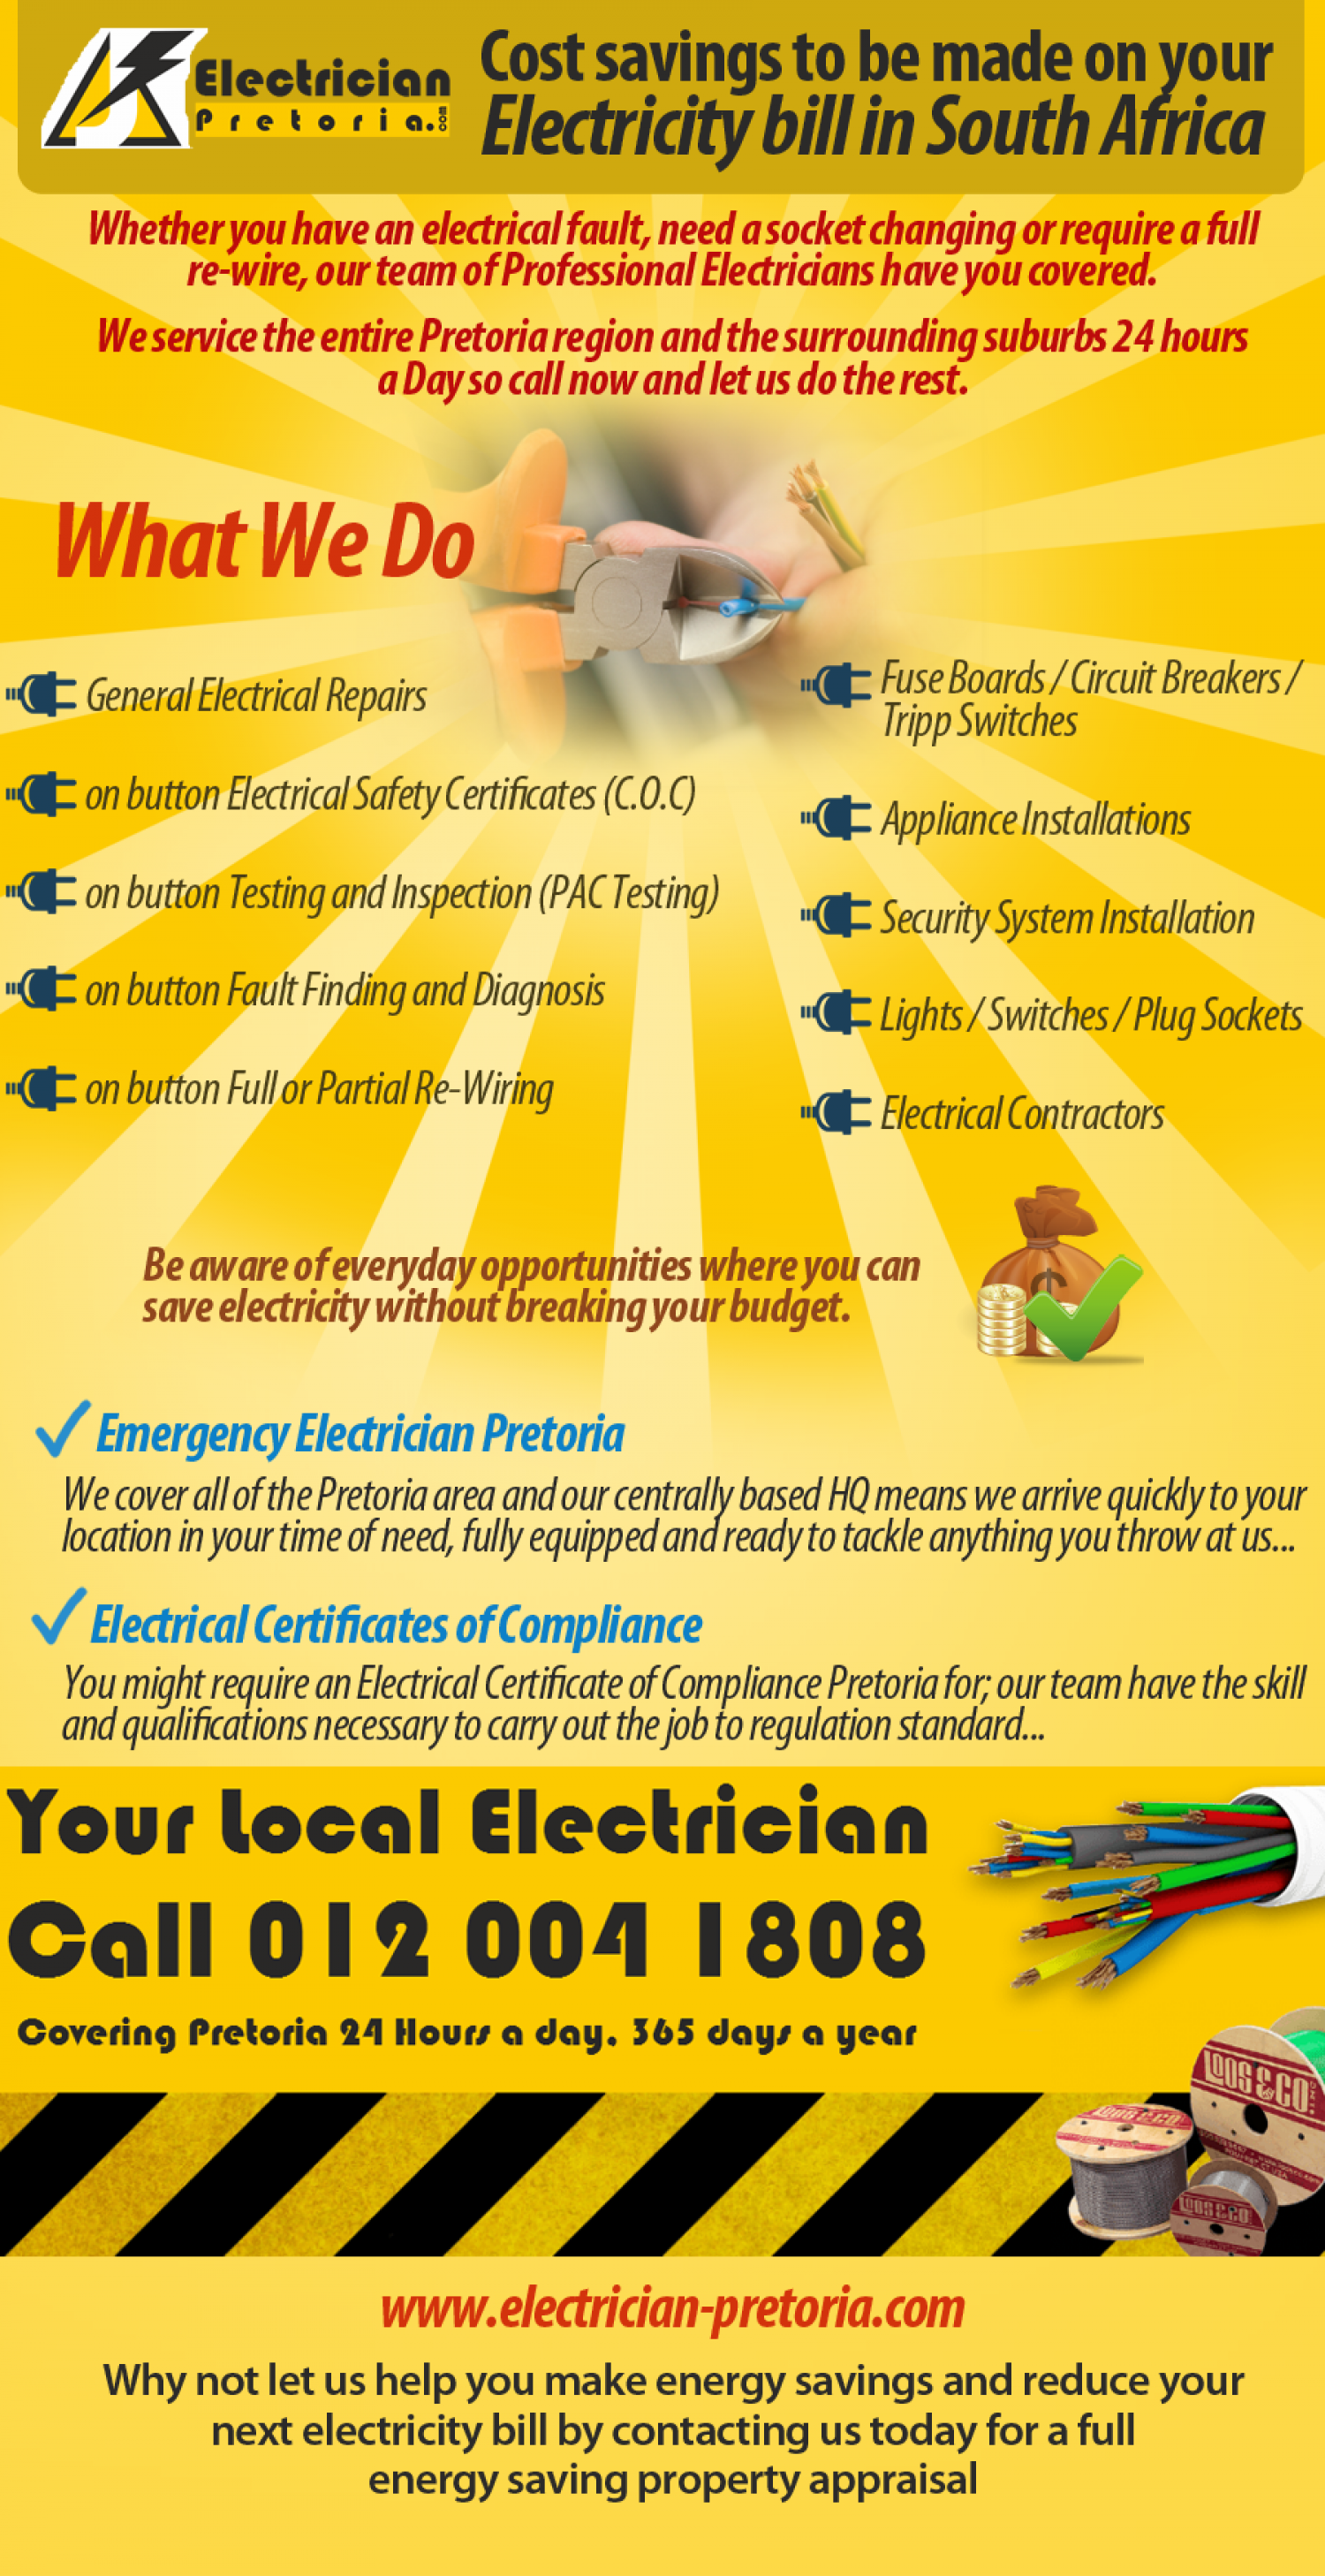 Cost savings to be made on your electricity bill in South Africa Infographic